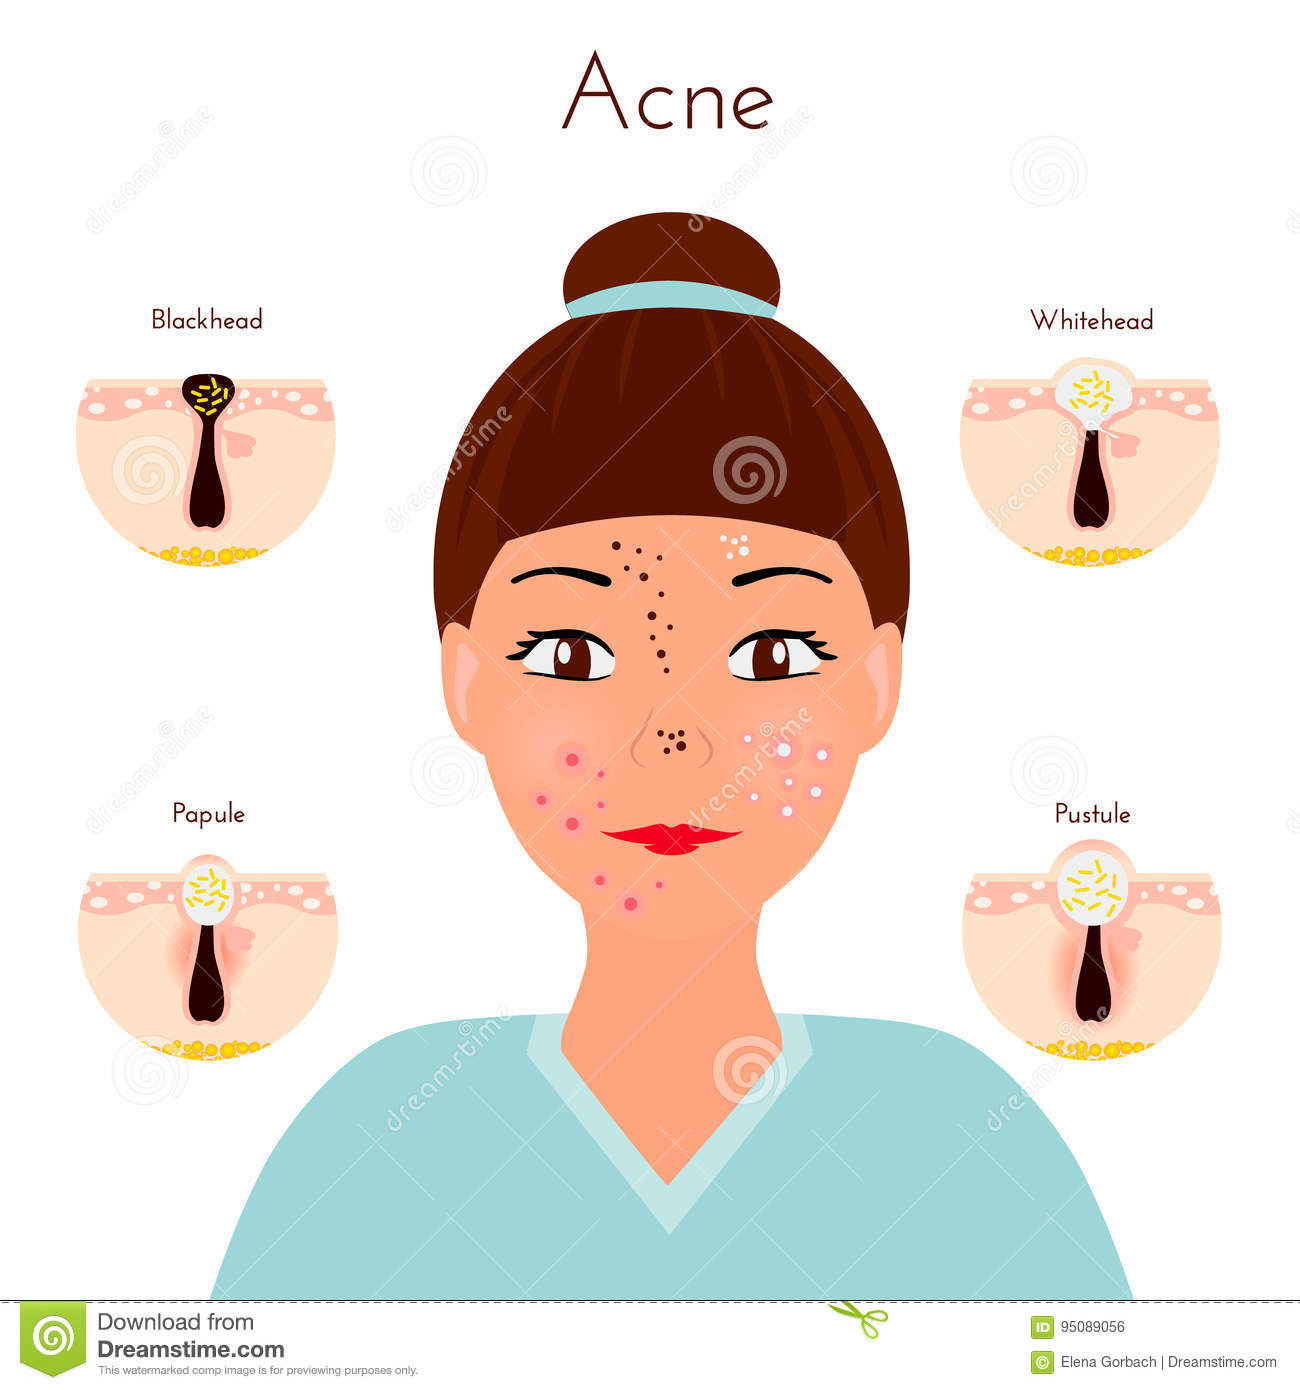 Apologise, but, Acne facial treatments possible